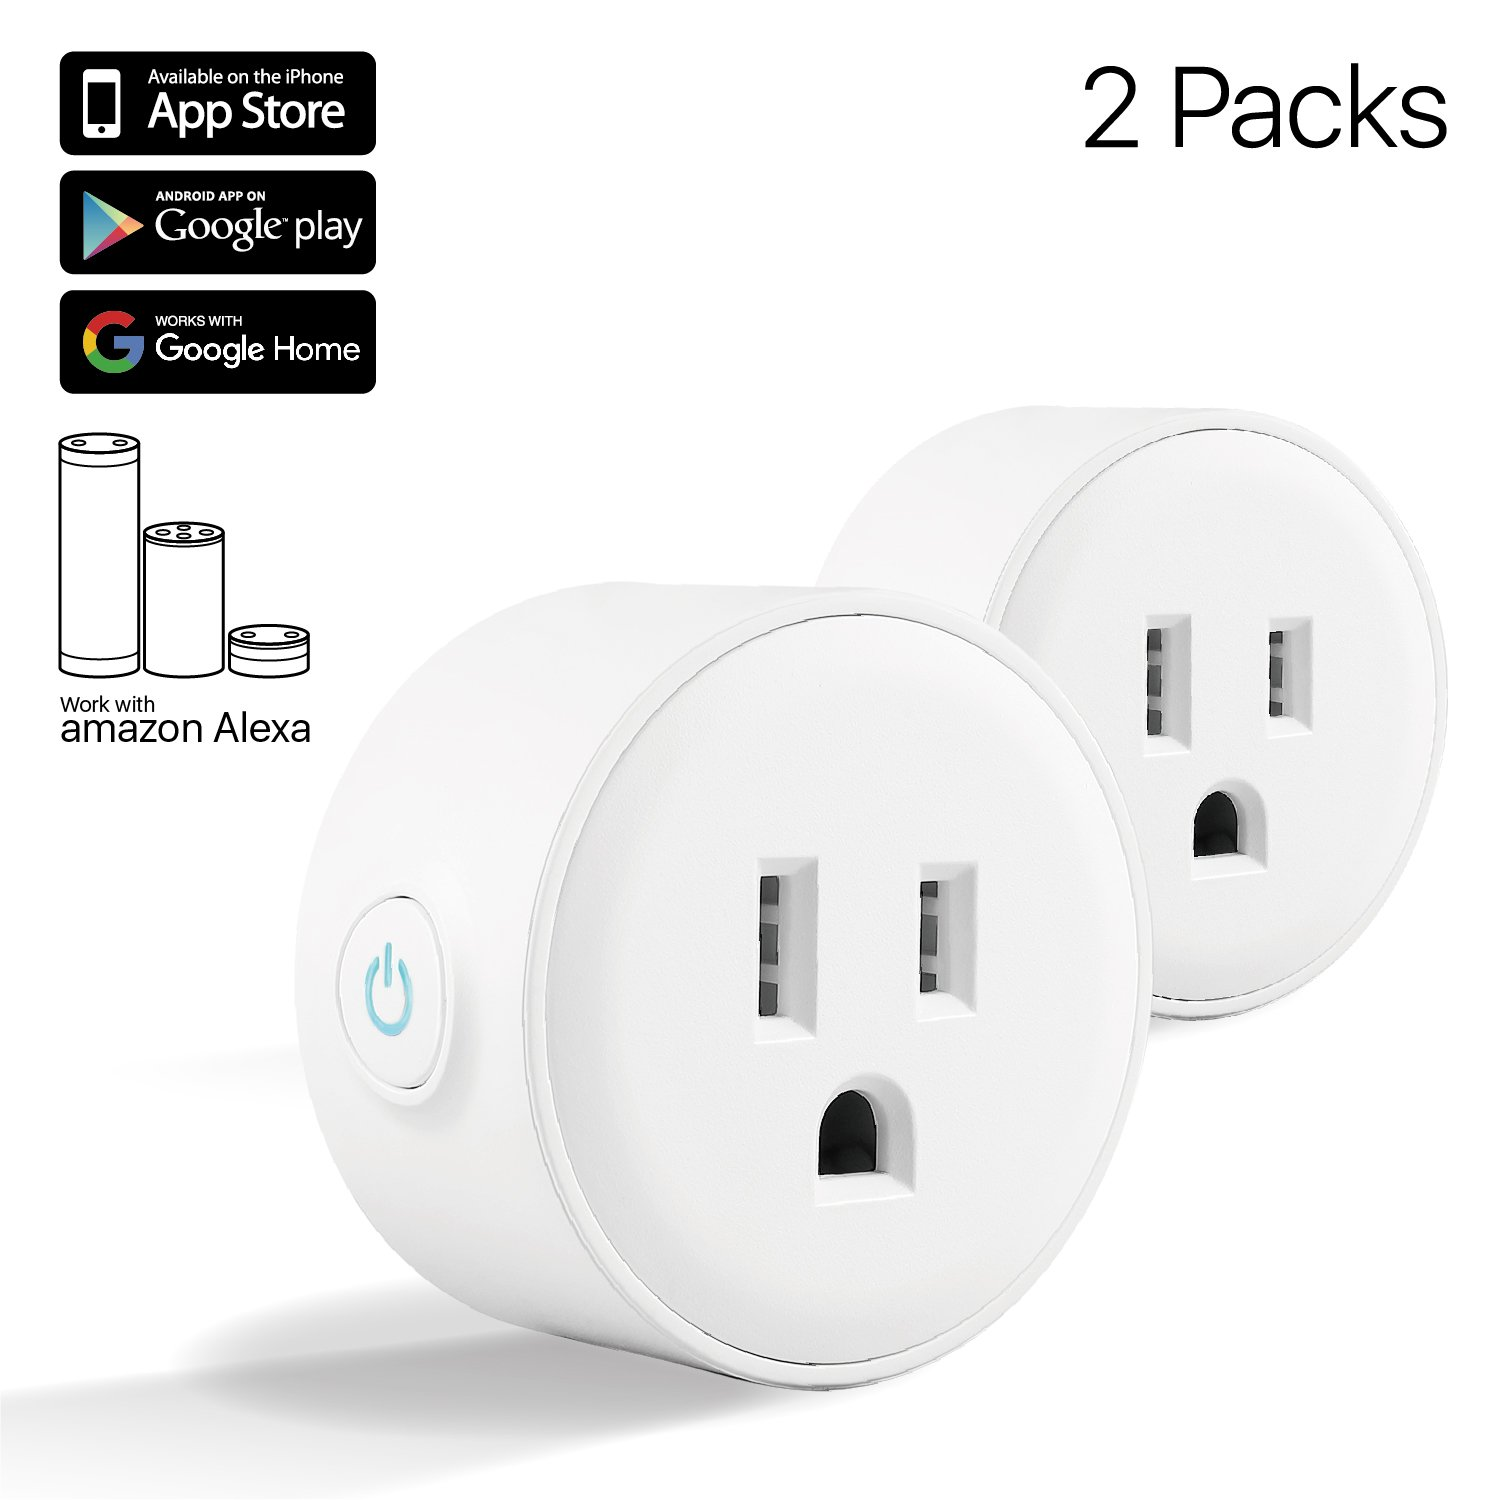 TNP Smart Plug Mini Wifi Outlet - Remote Control Smart Socket Wireless Compatible with Alexa Echo Google Home, No Hub Required, Indoor/Outdoor Timer Switch Socket Android, IOS (White) - 2 Pack by TNP Products